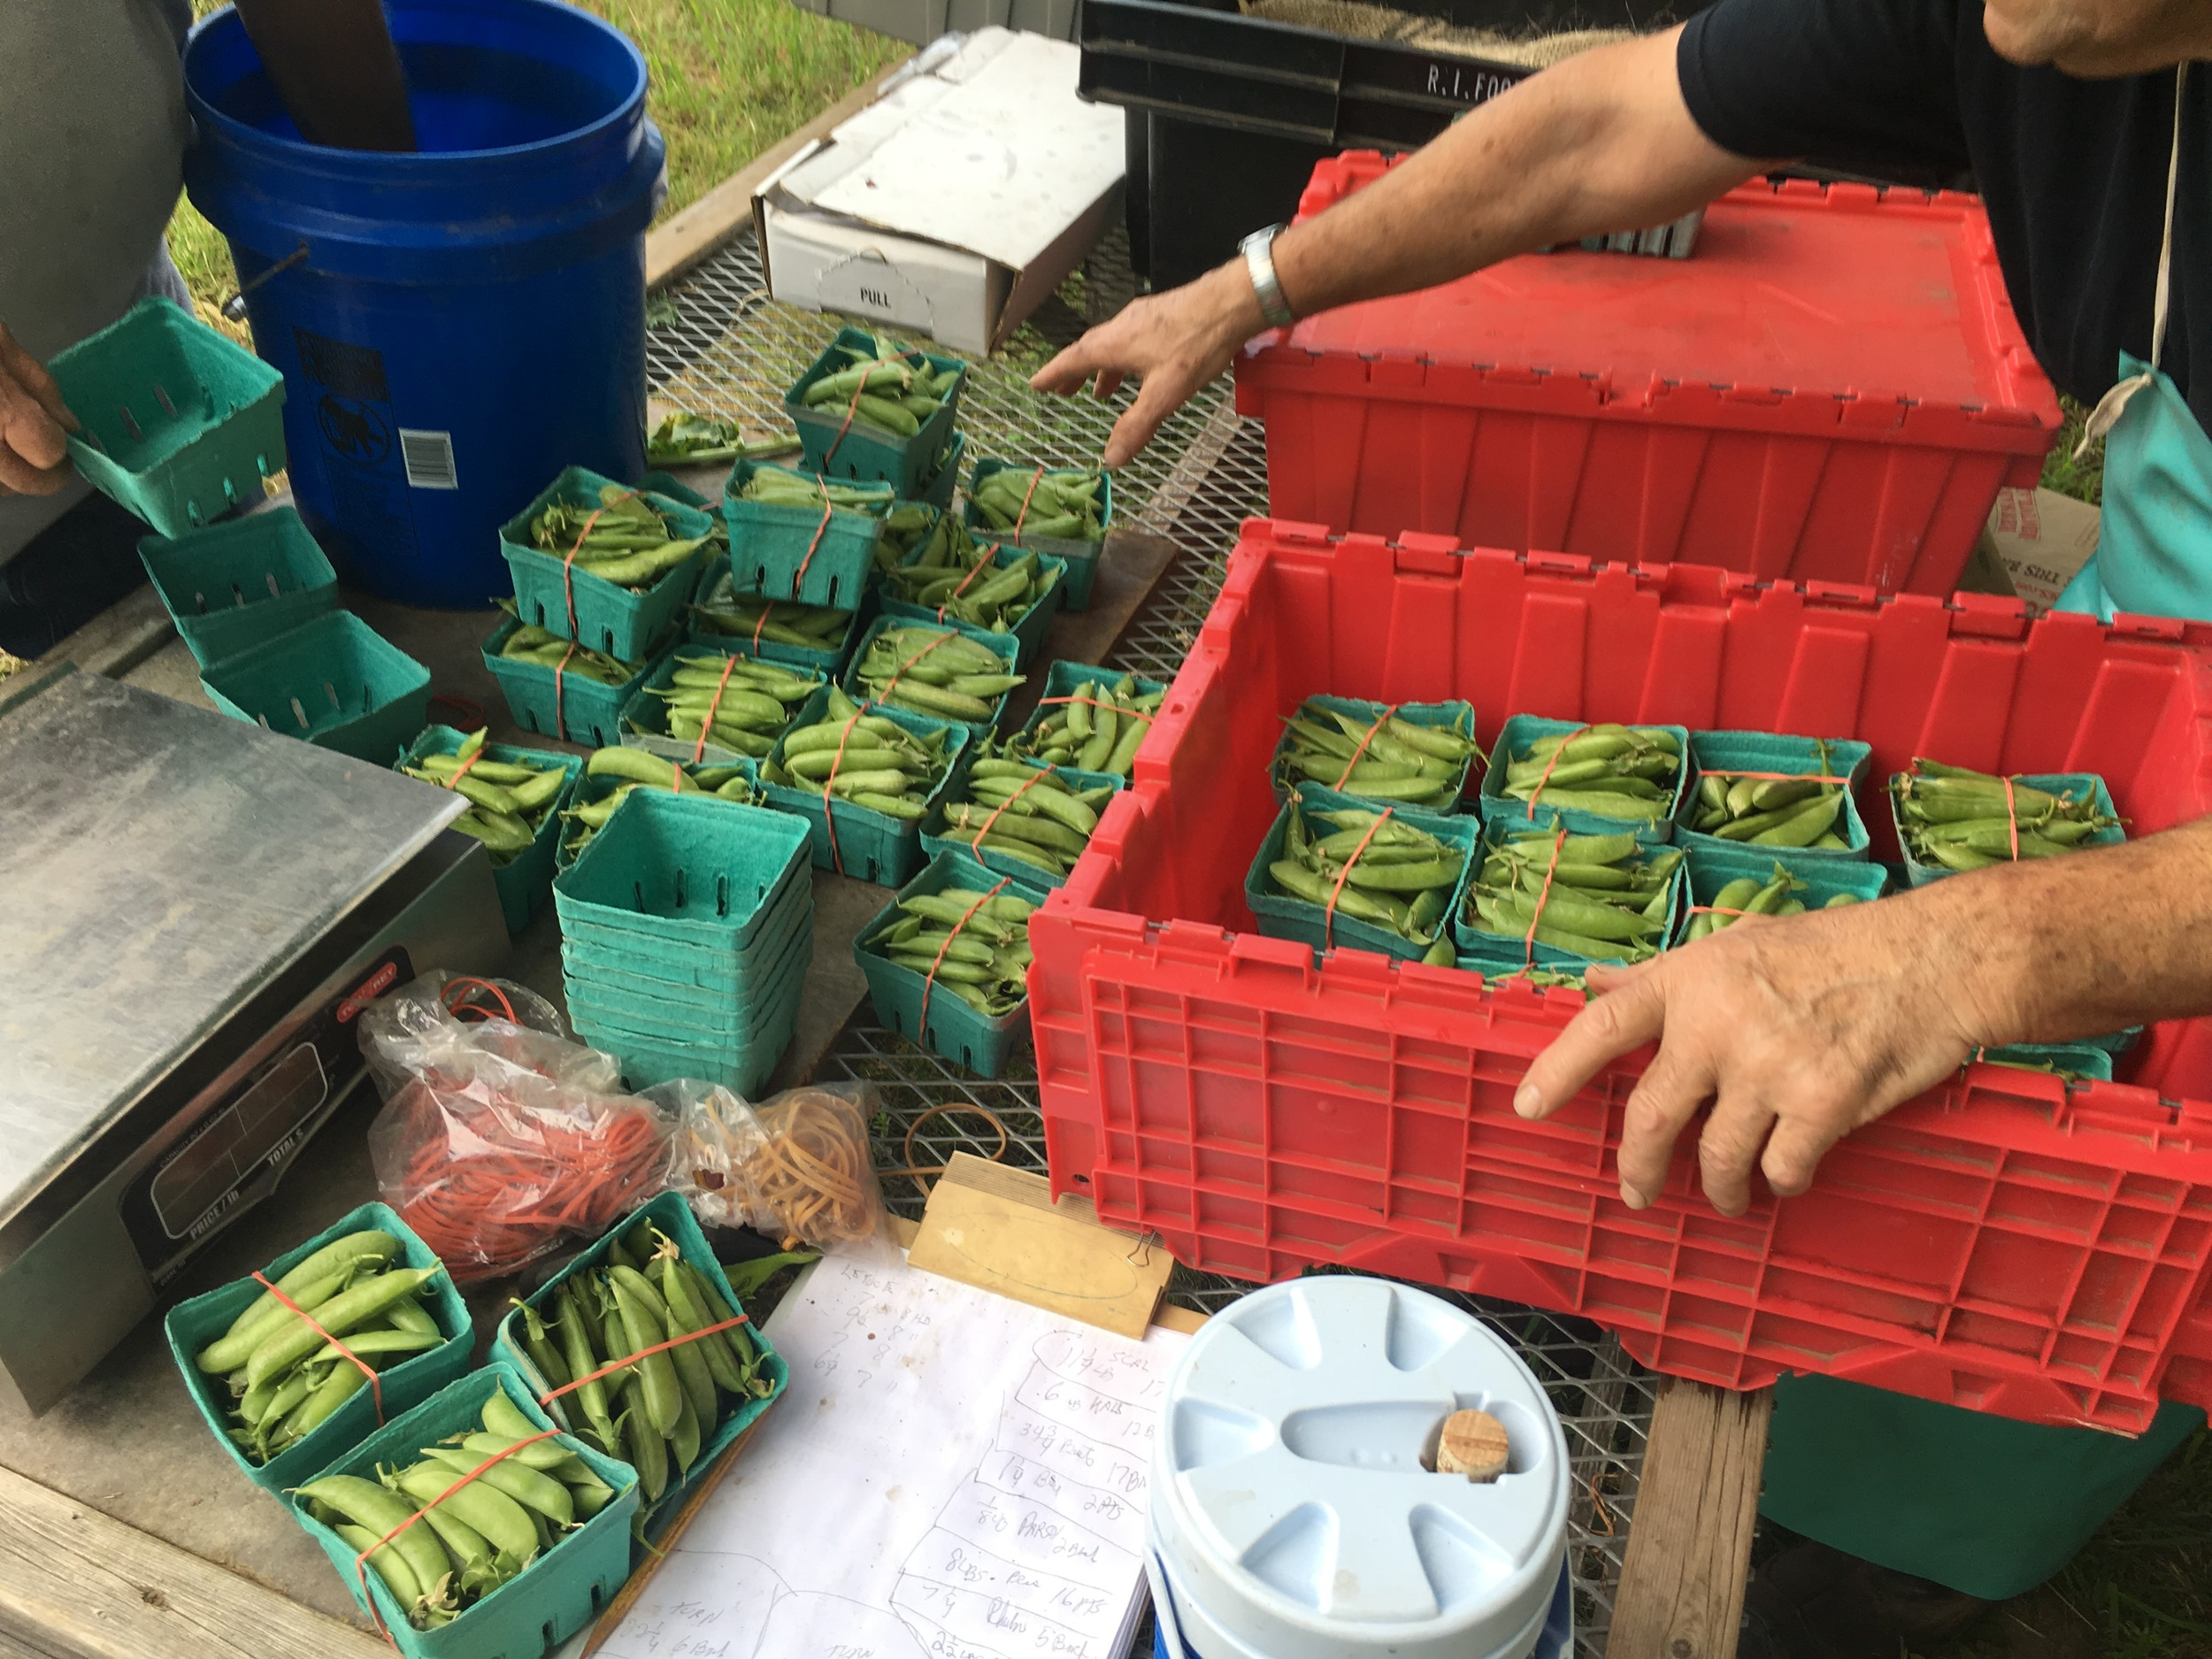 Westbay Farm produced 24,000 pounds of produce last year in its best harvest ever. Here, volunteers count and sort snap peas.